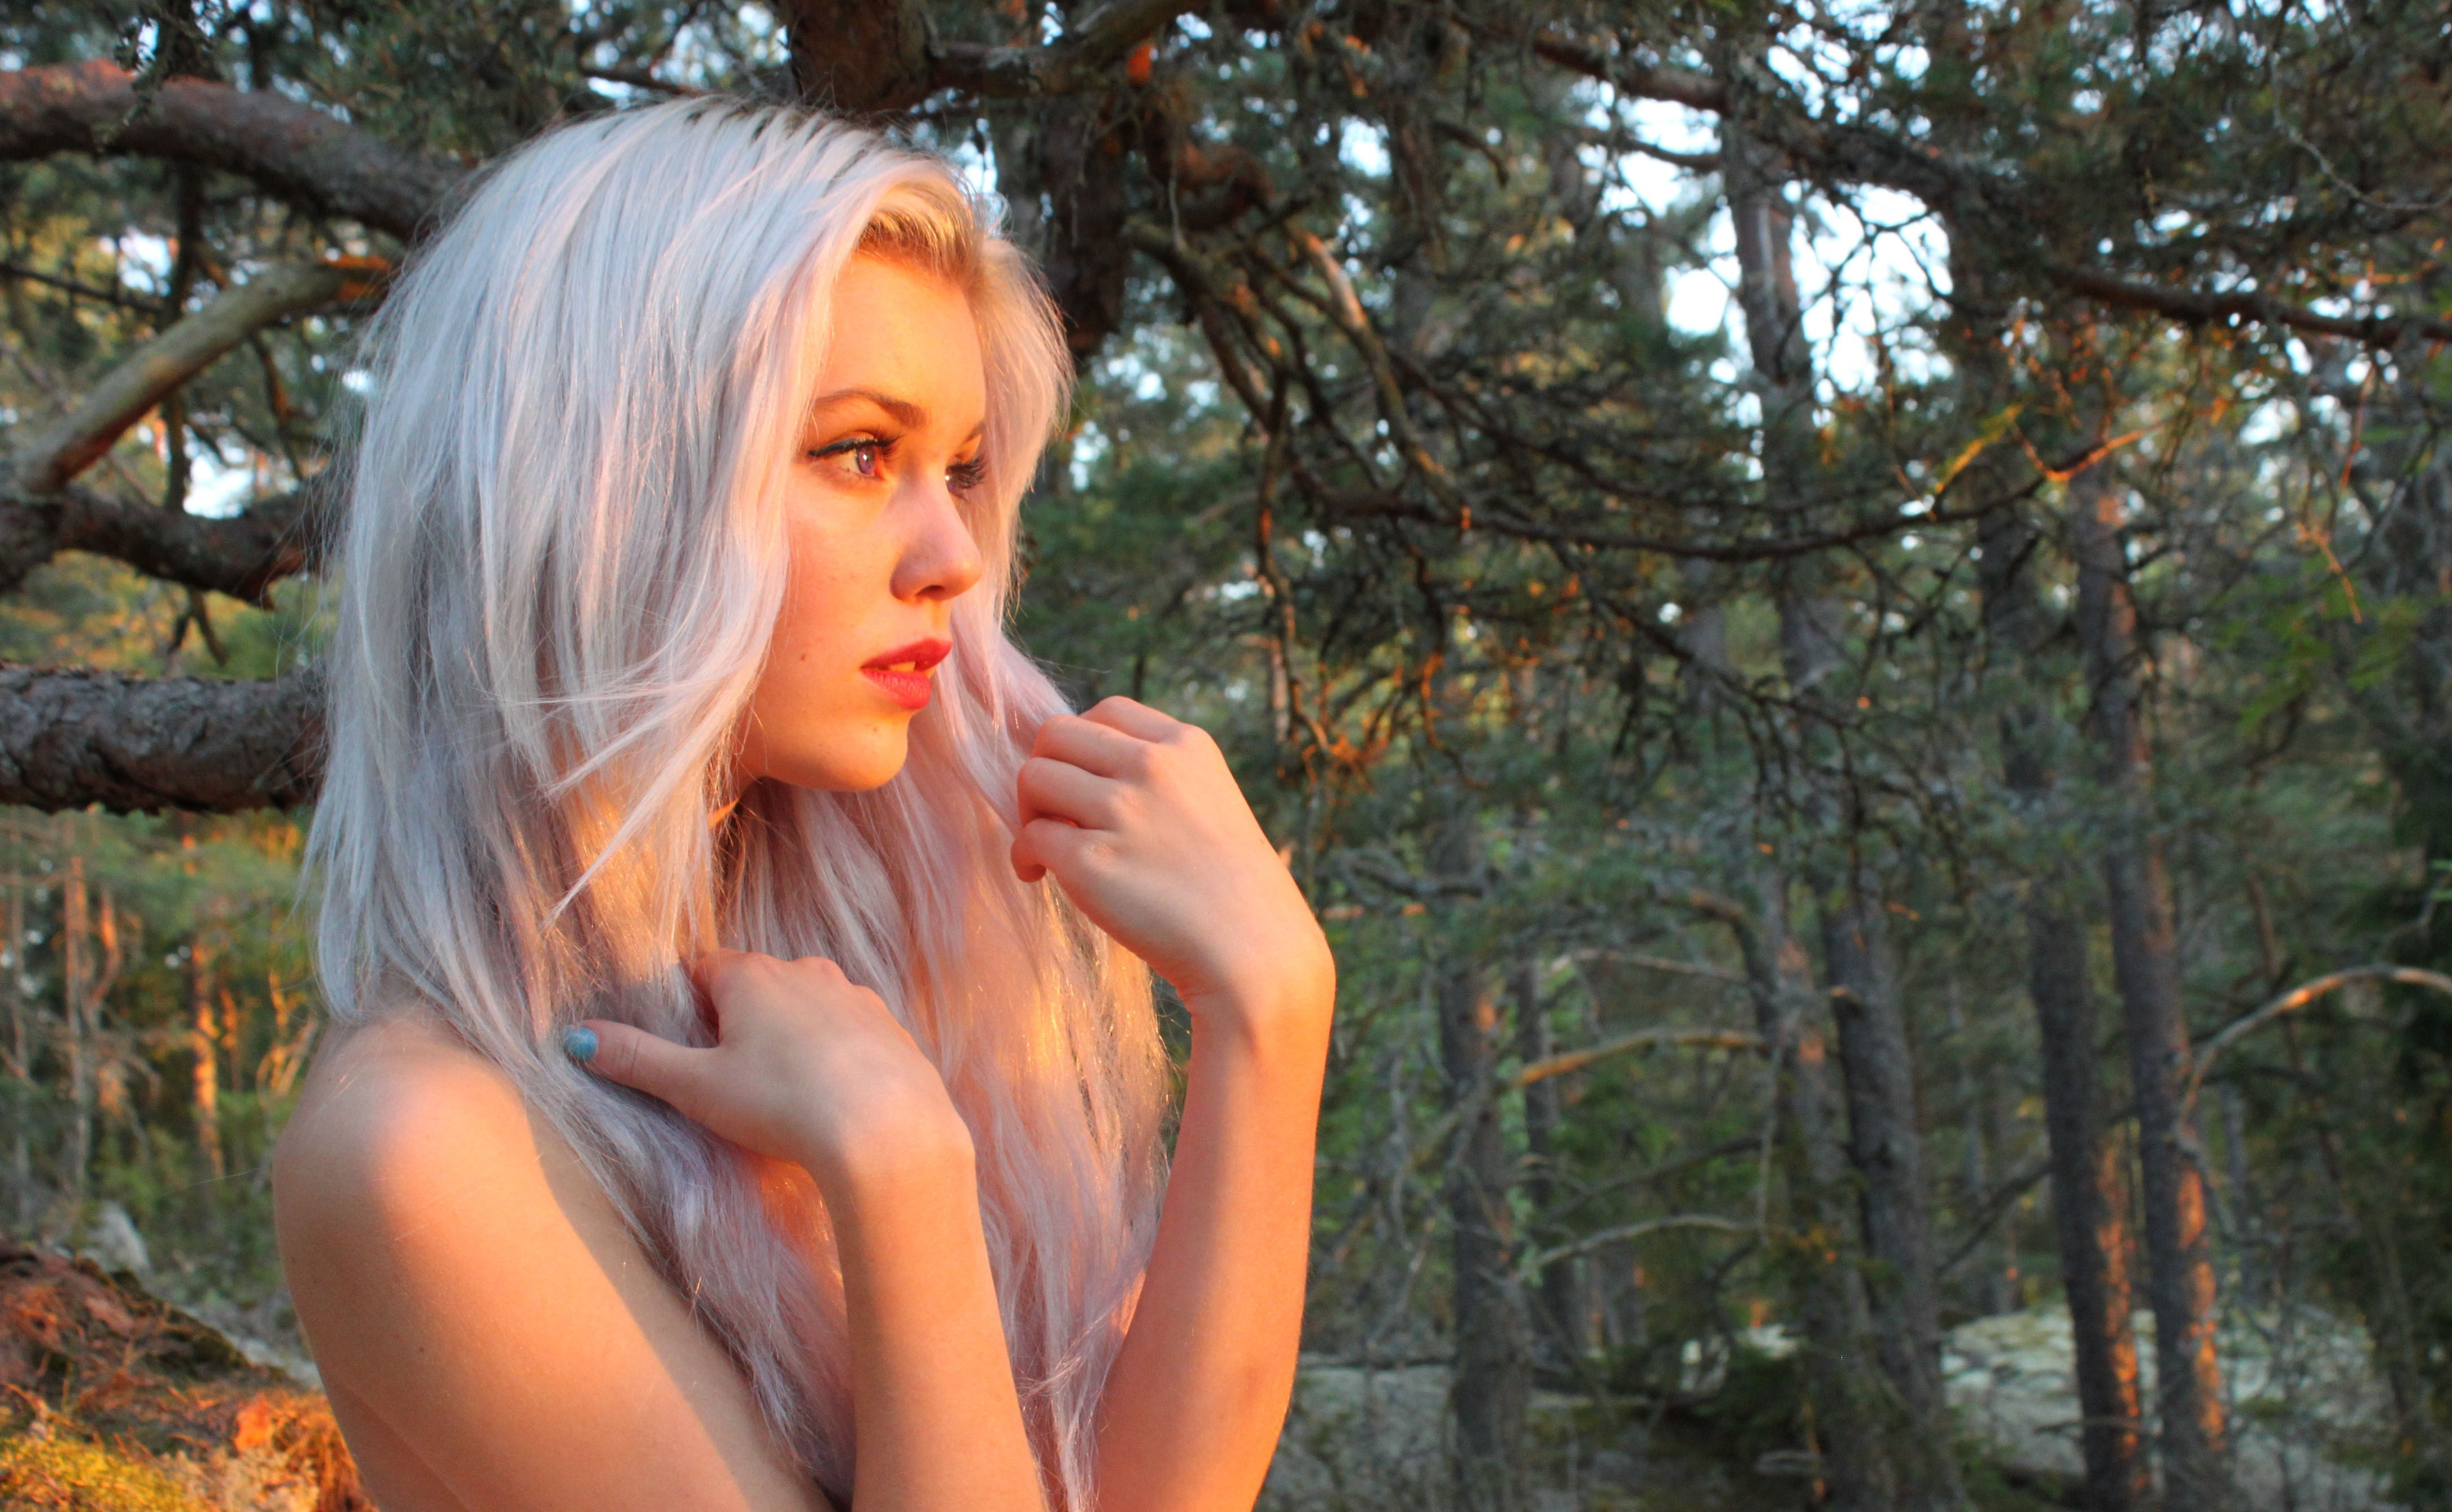 Forest nud girl wallpaper hentay photos